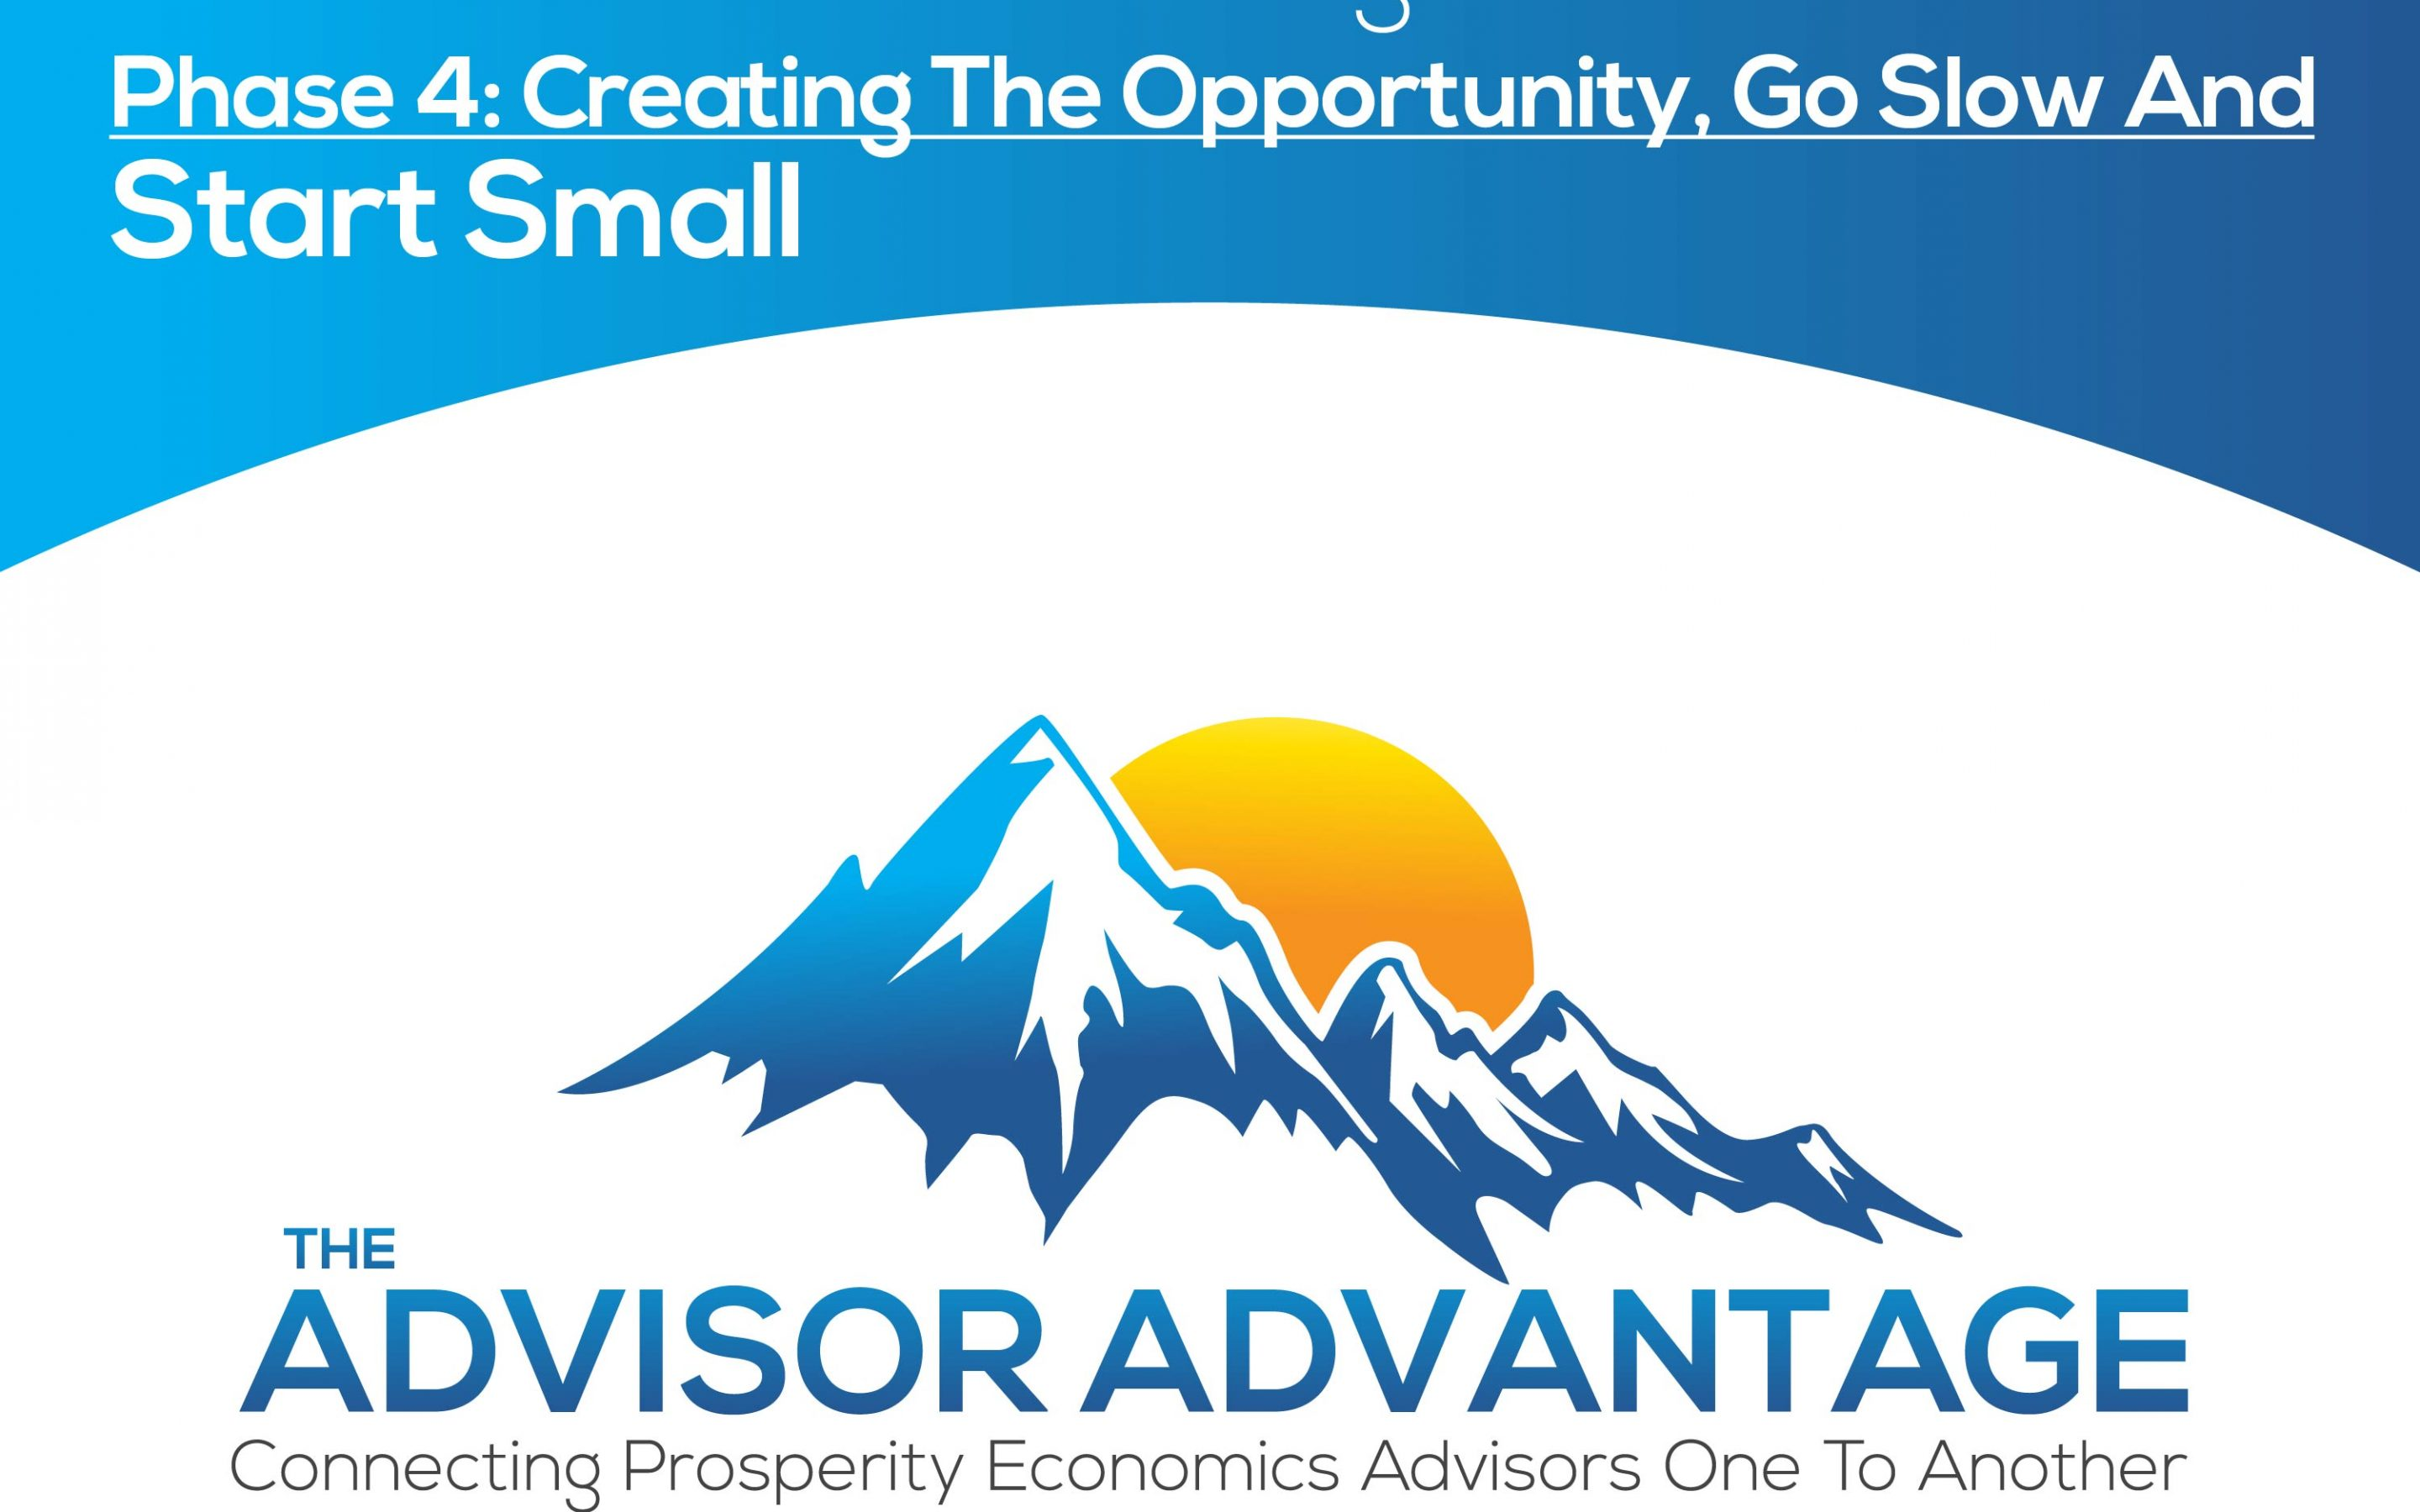 Phases of Financial Progress. Phase 4: Creating The Opportunity, Go Slow And Start Small – Episode 117